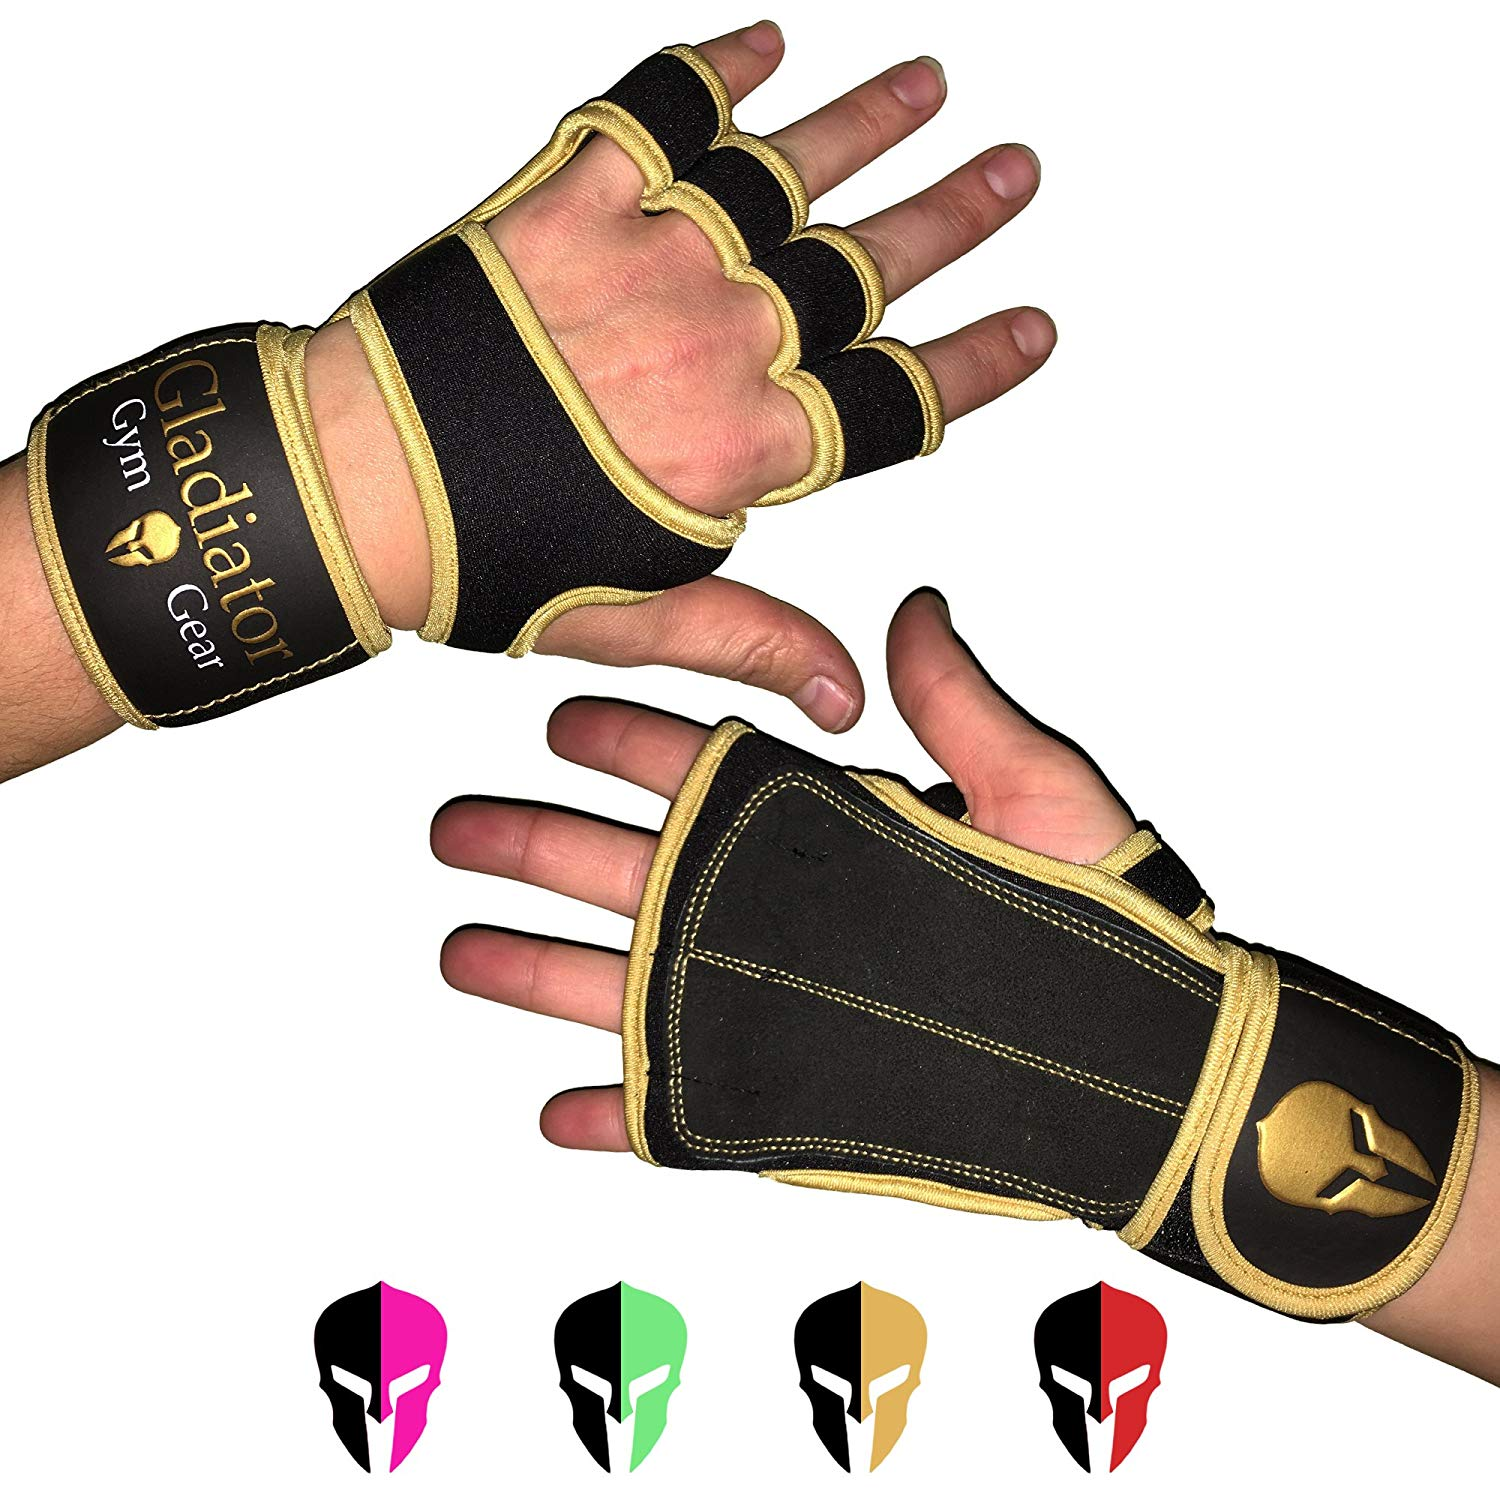 Gladiator Gym Gear Cross Training Gloves